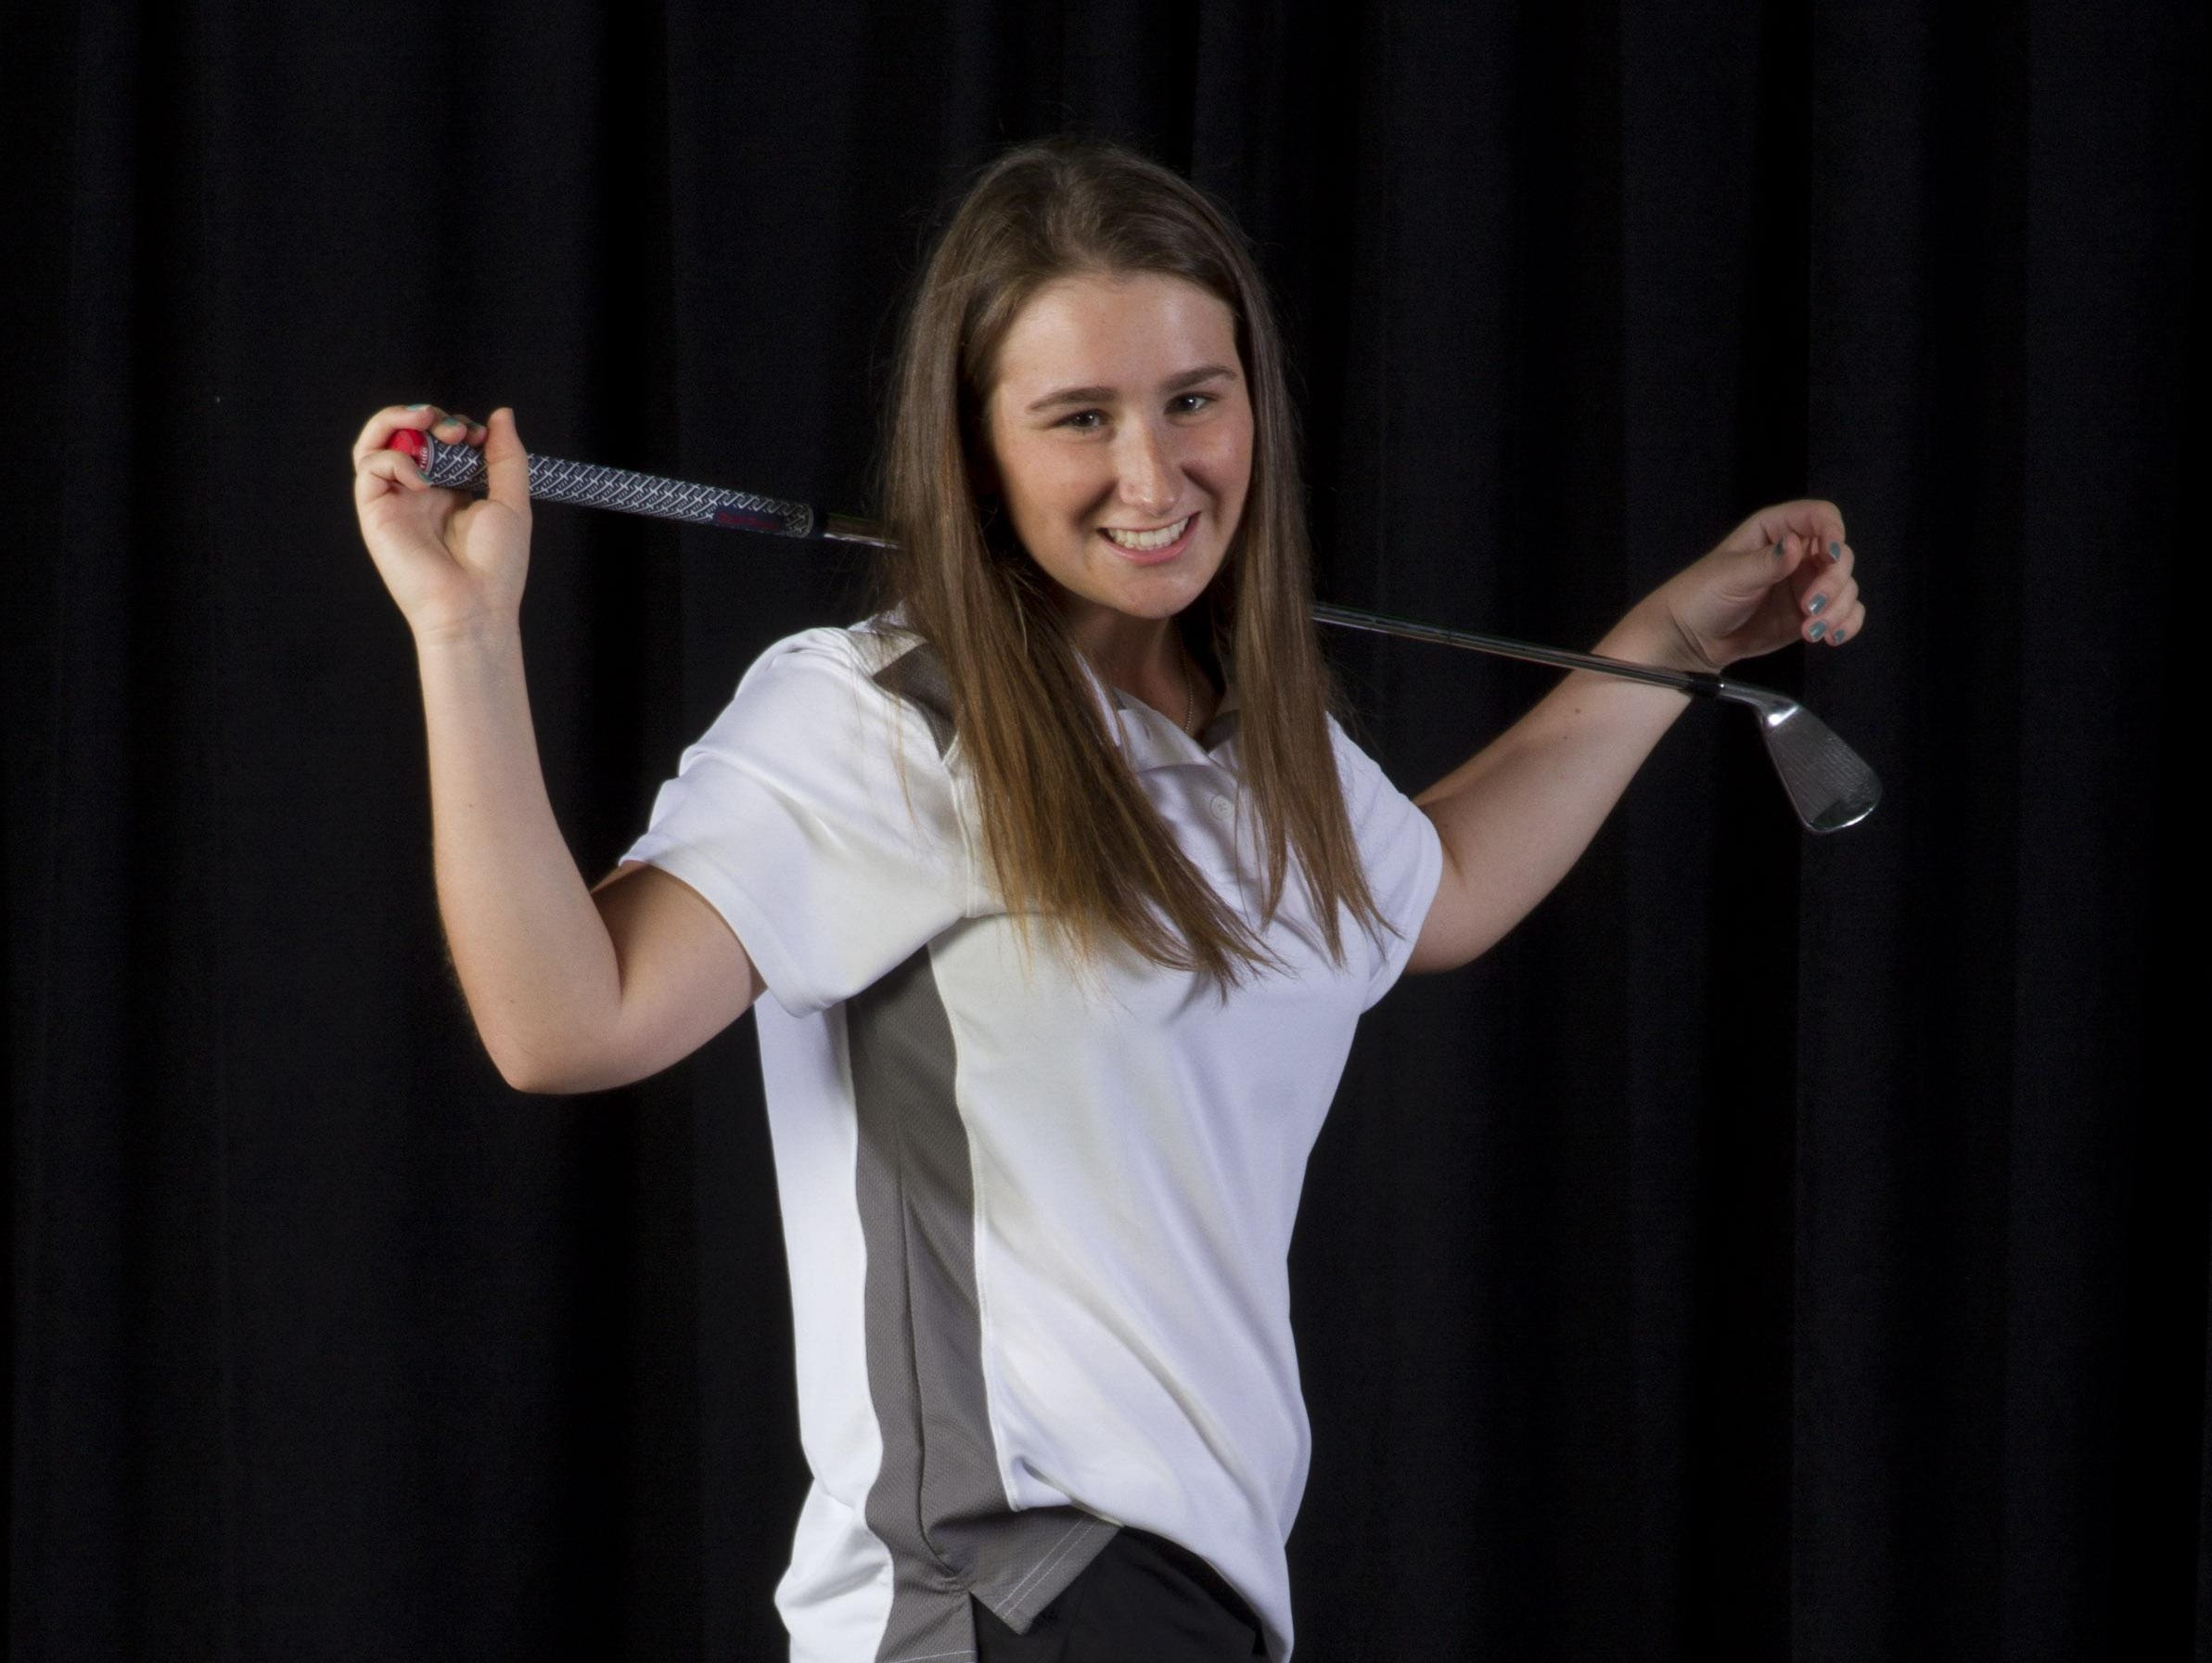 Nicole Totland of Red Bank Catholic is the 2015 All-Shore Girls Golfer of the Year.